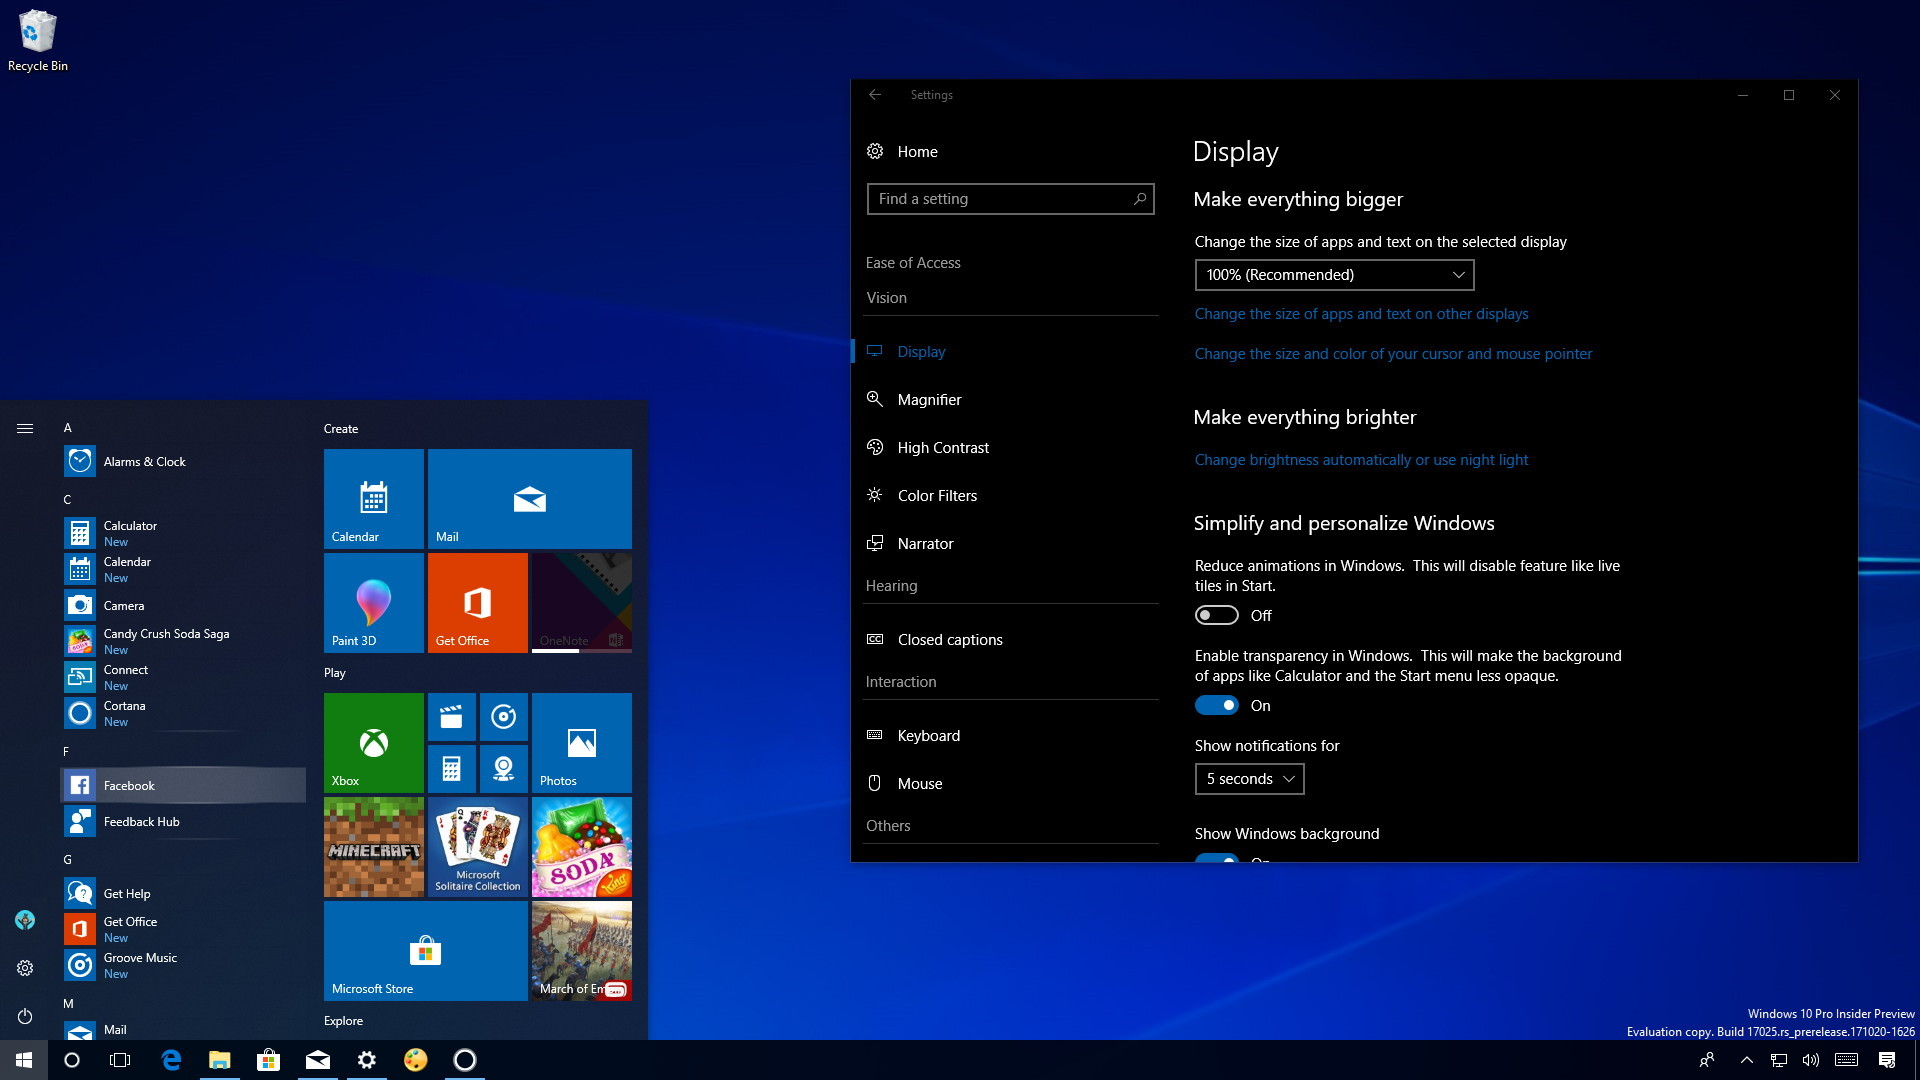 windows 10 features list